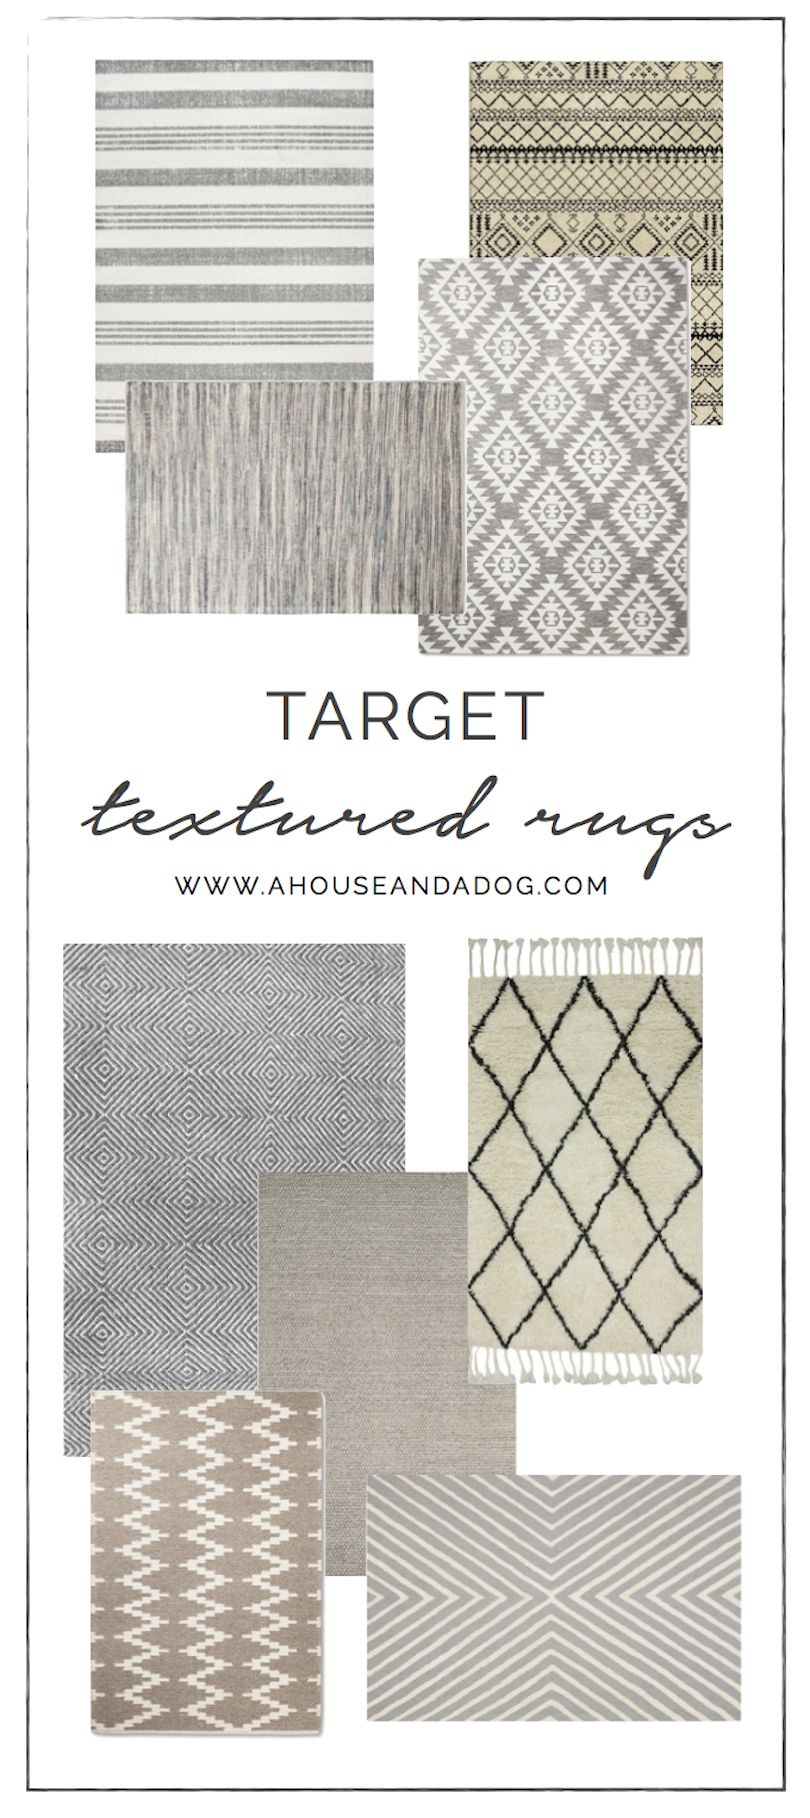 Living Room Rugs Target.Textured Neutral Rugs Home Farmhouse Rugs Room Rugs